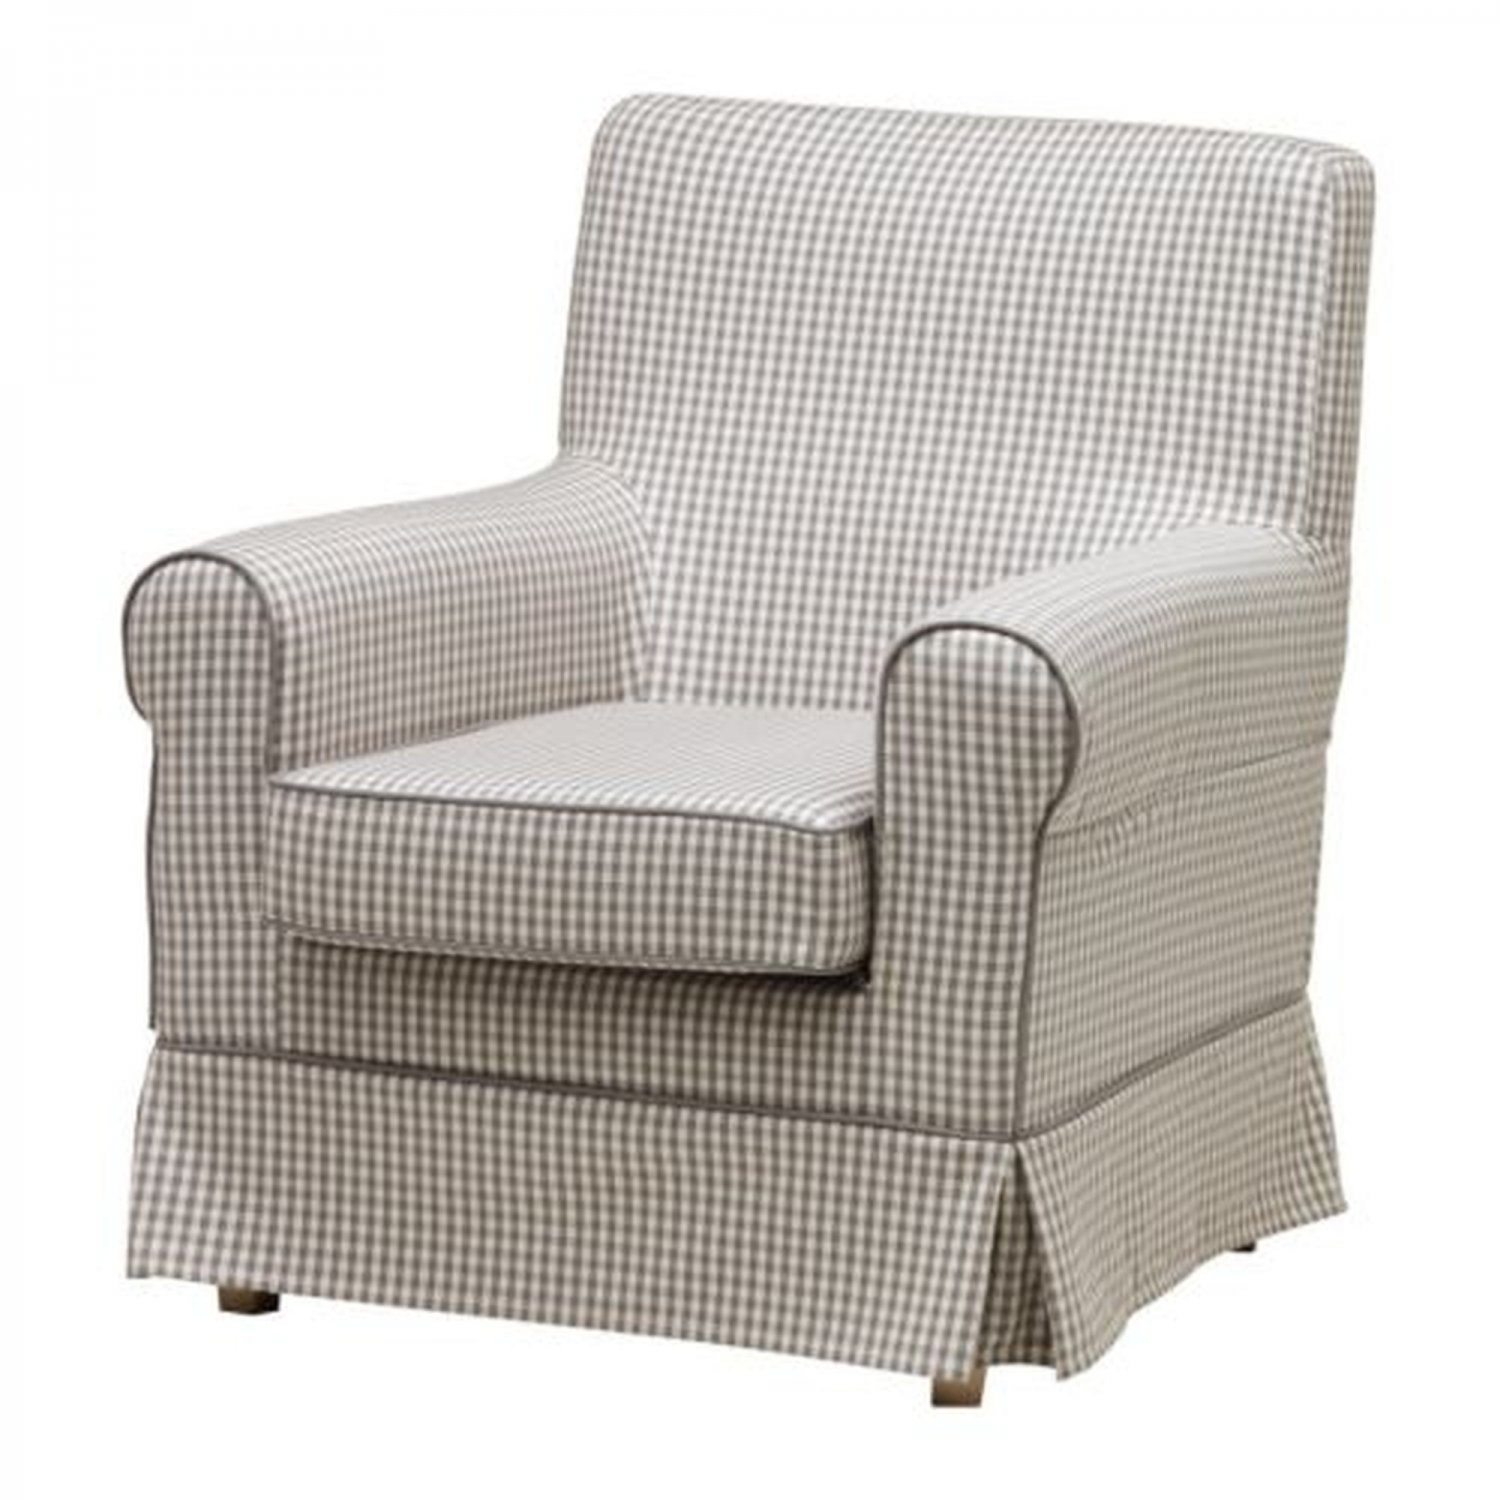 ikea tullsta chair covers uk patio dining cushions canada ektorp jennylund armchair slipcover cover sagmyra